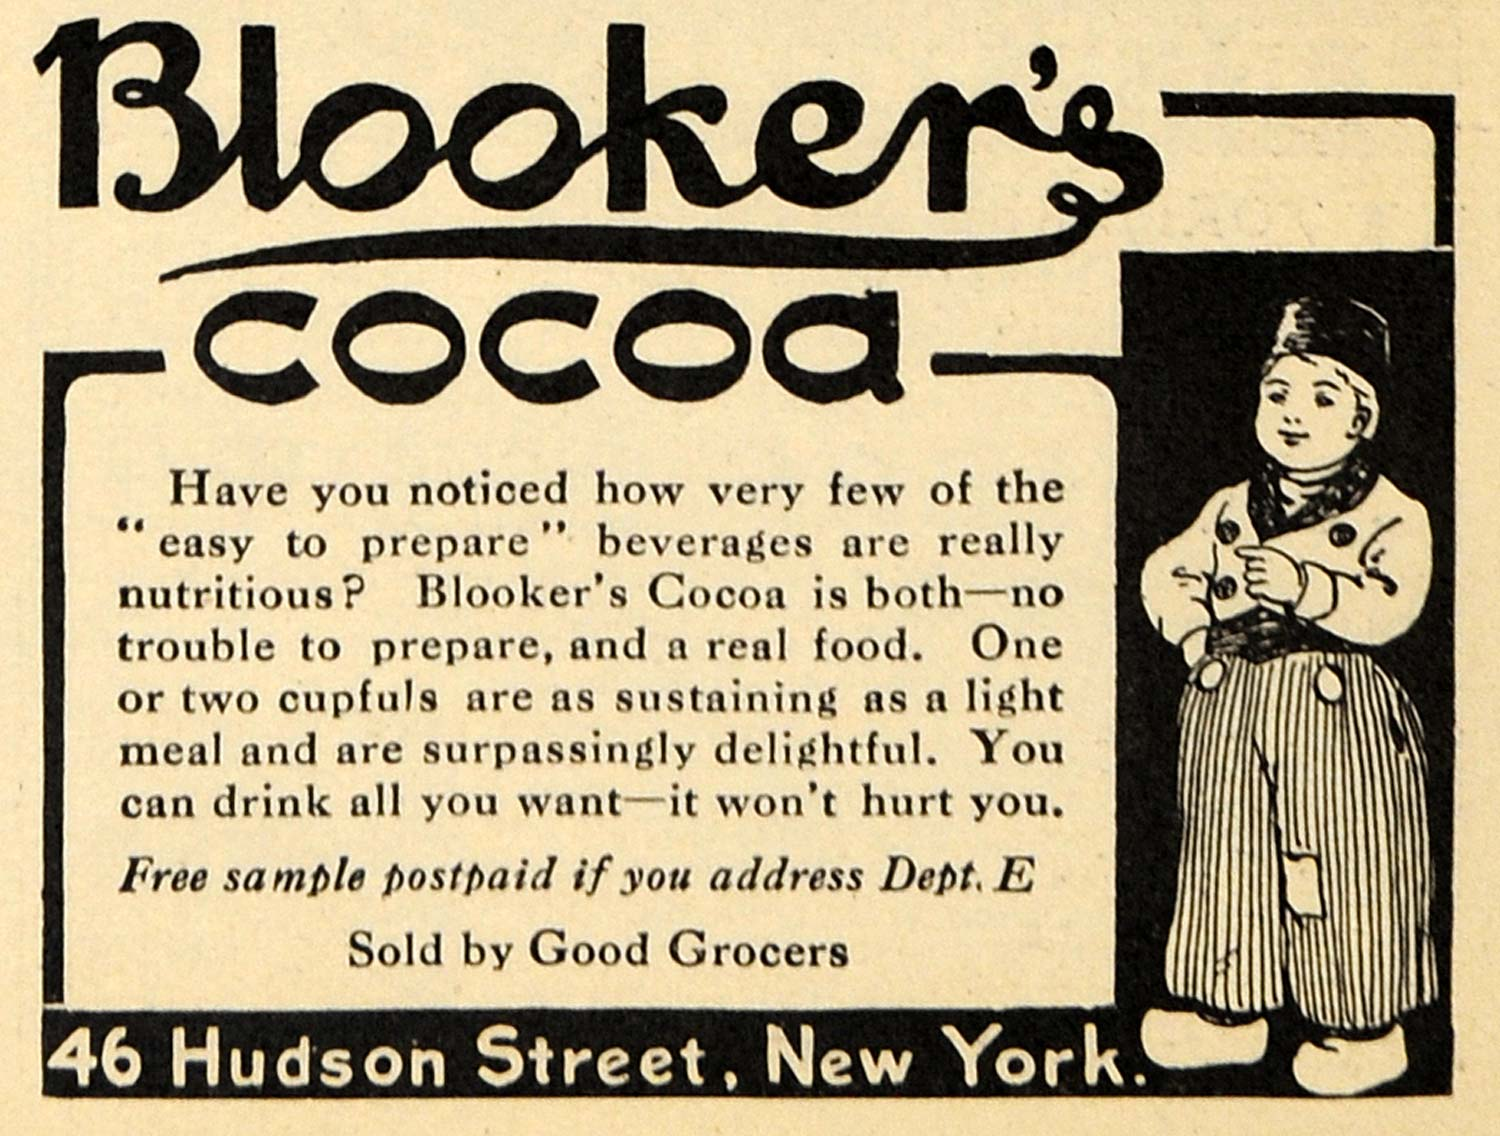 1912 Ad Blookers Cocoa Franco American Food Company - ORIGINAL ADVERTISING EM1